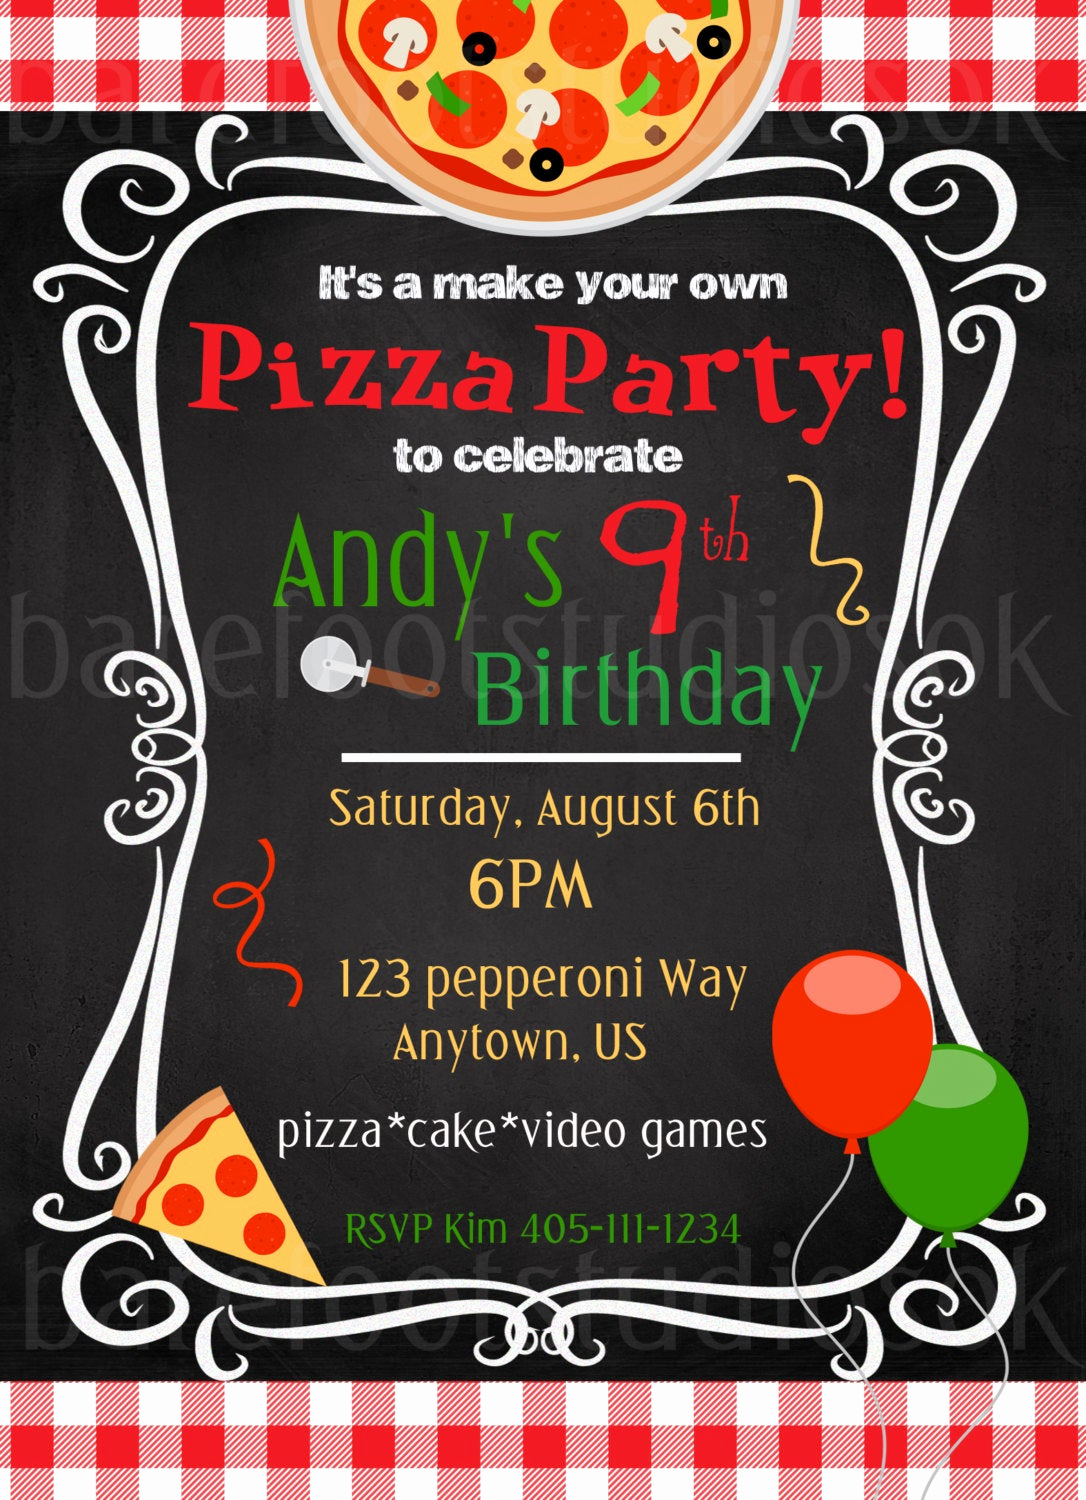 Pizza Party Invitation Templates Awesome Pizza Party Invitation Pizza Party Printable Birthday